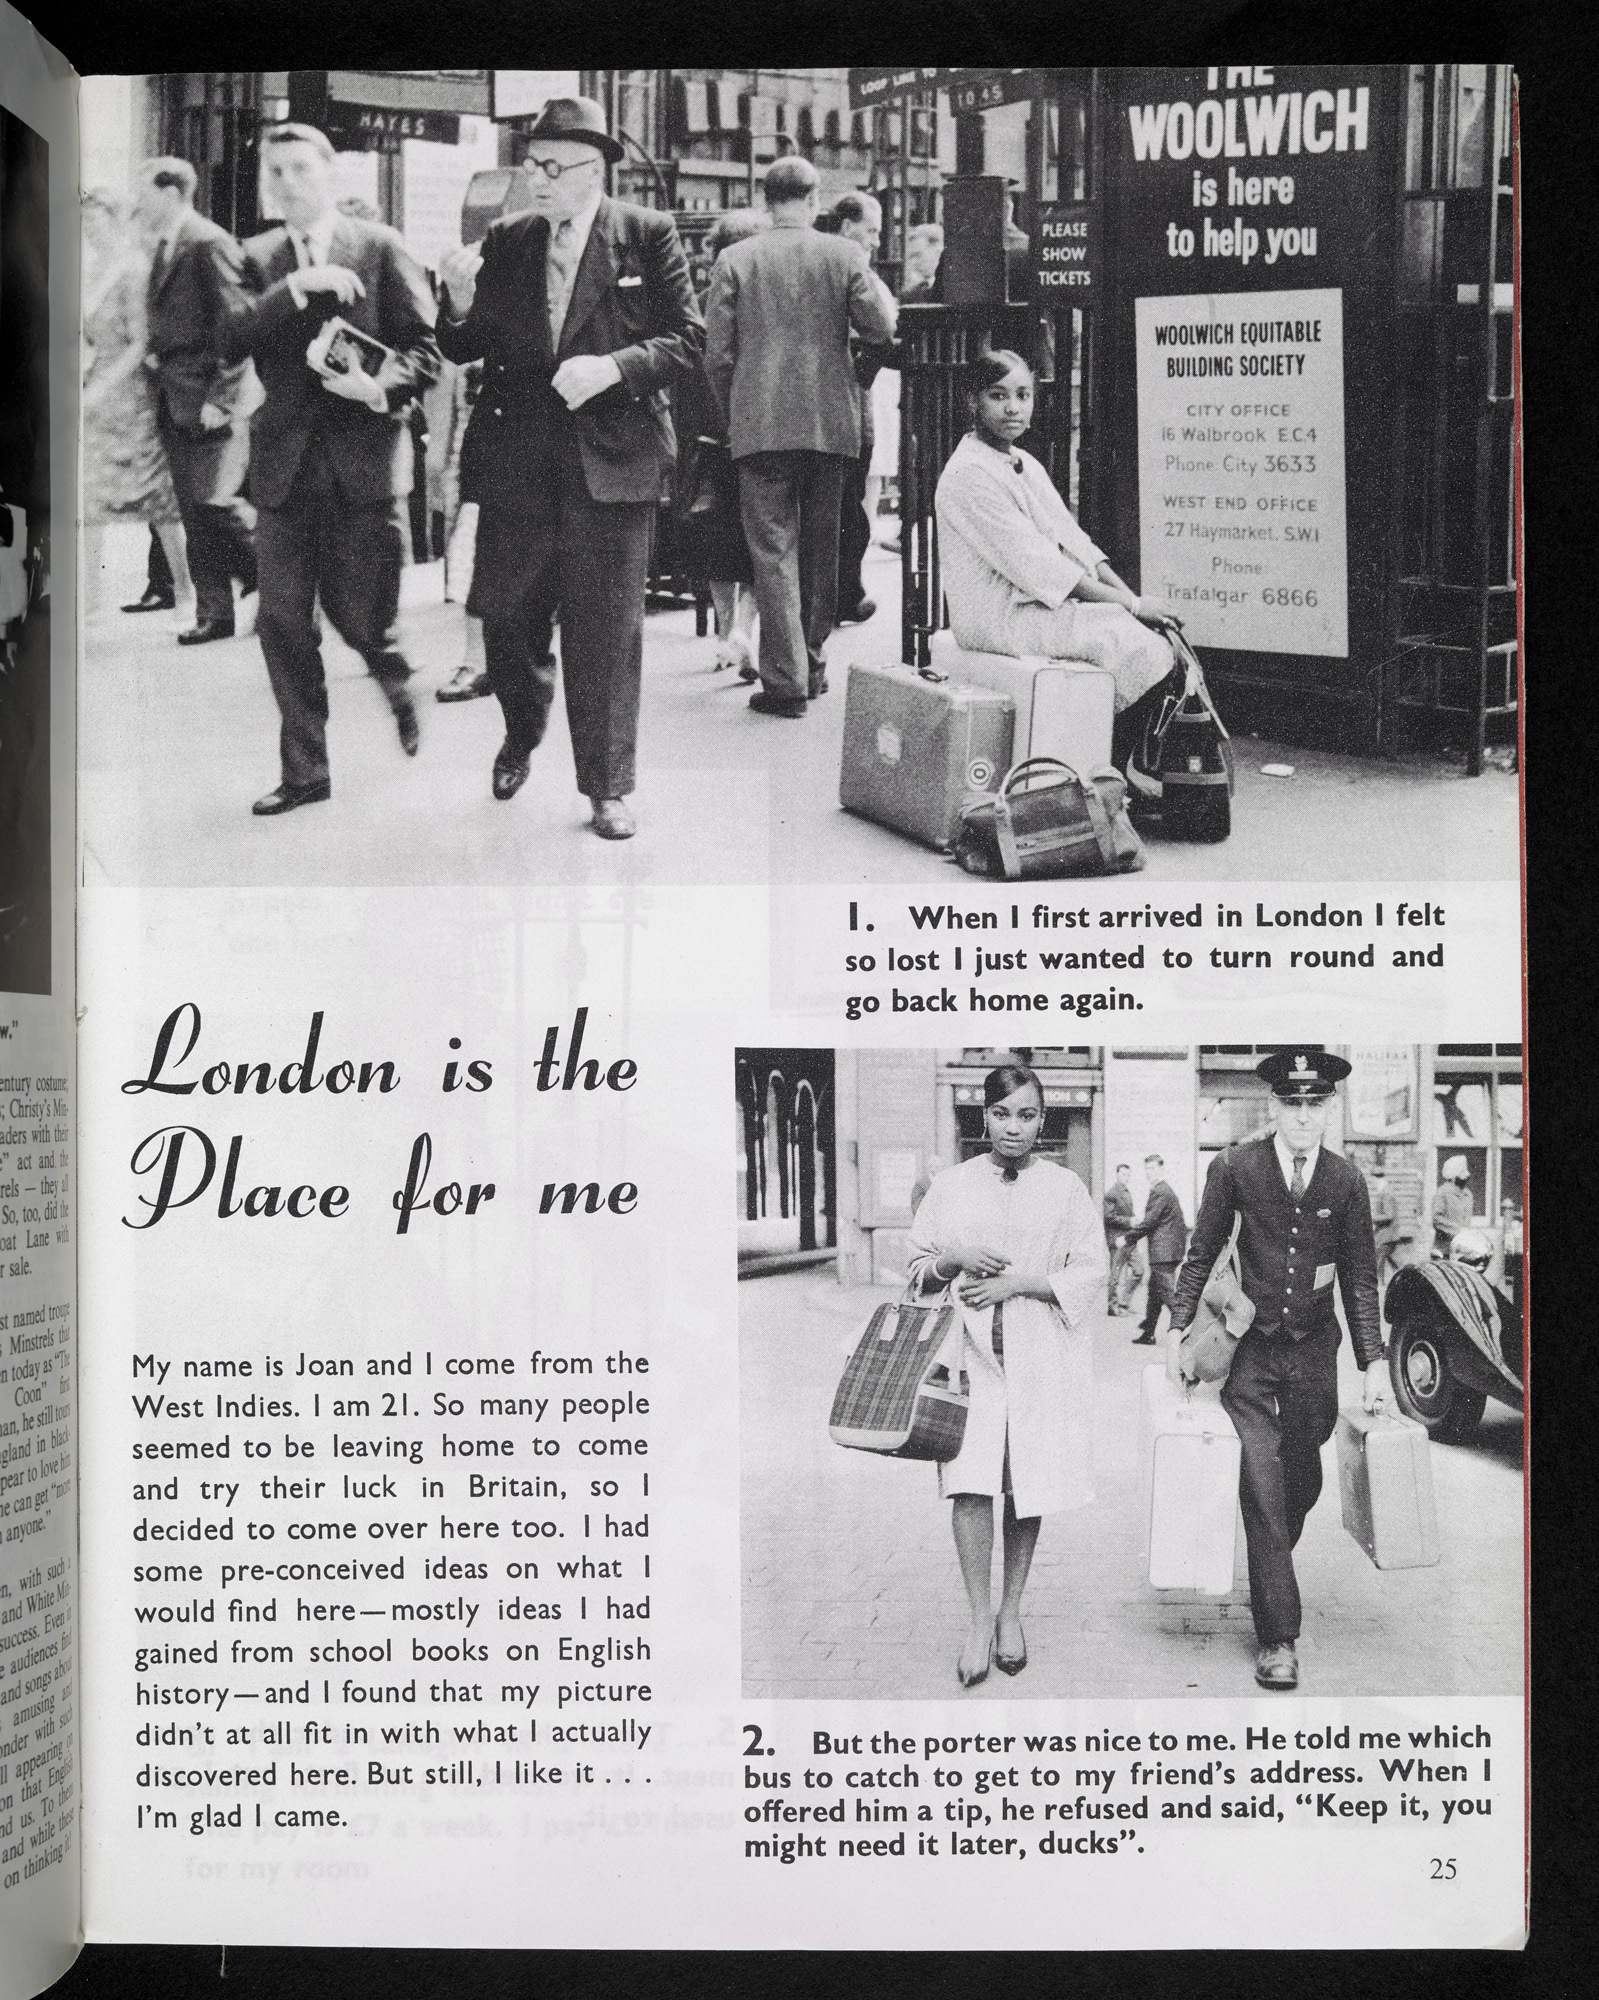 Page 25 from Flamingo Magazine, 'London is the Place for me' photo essay about 21-year-old Joan's arrival in London